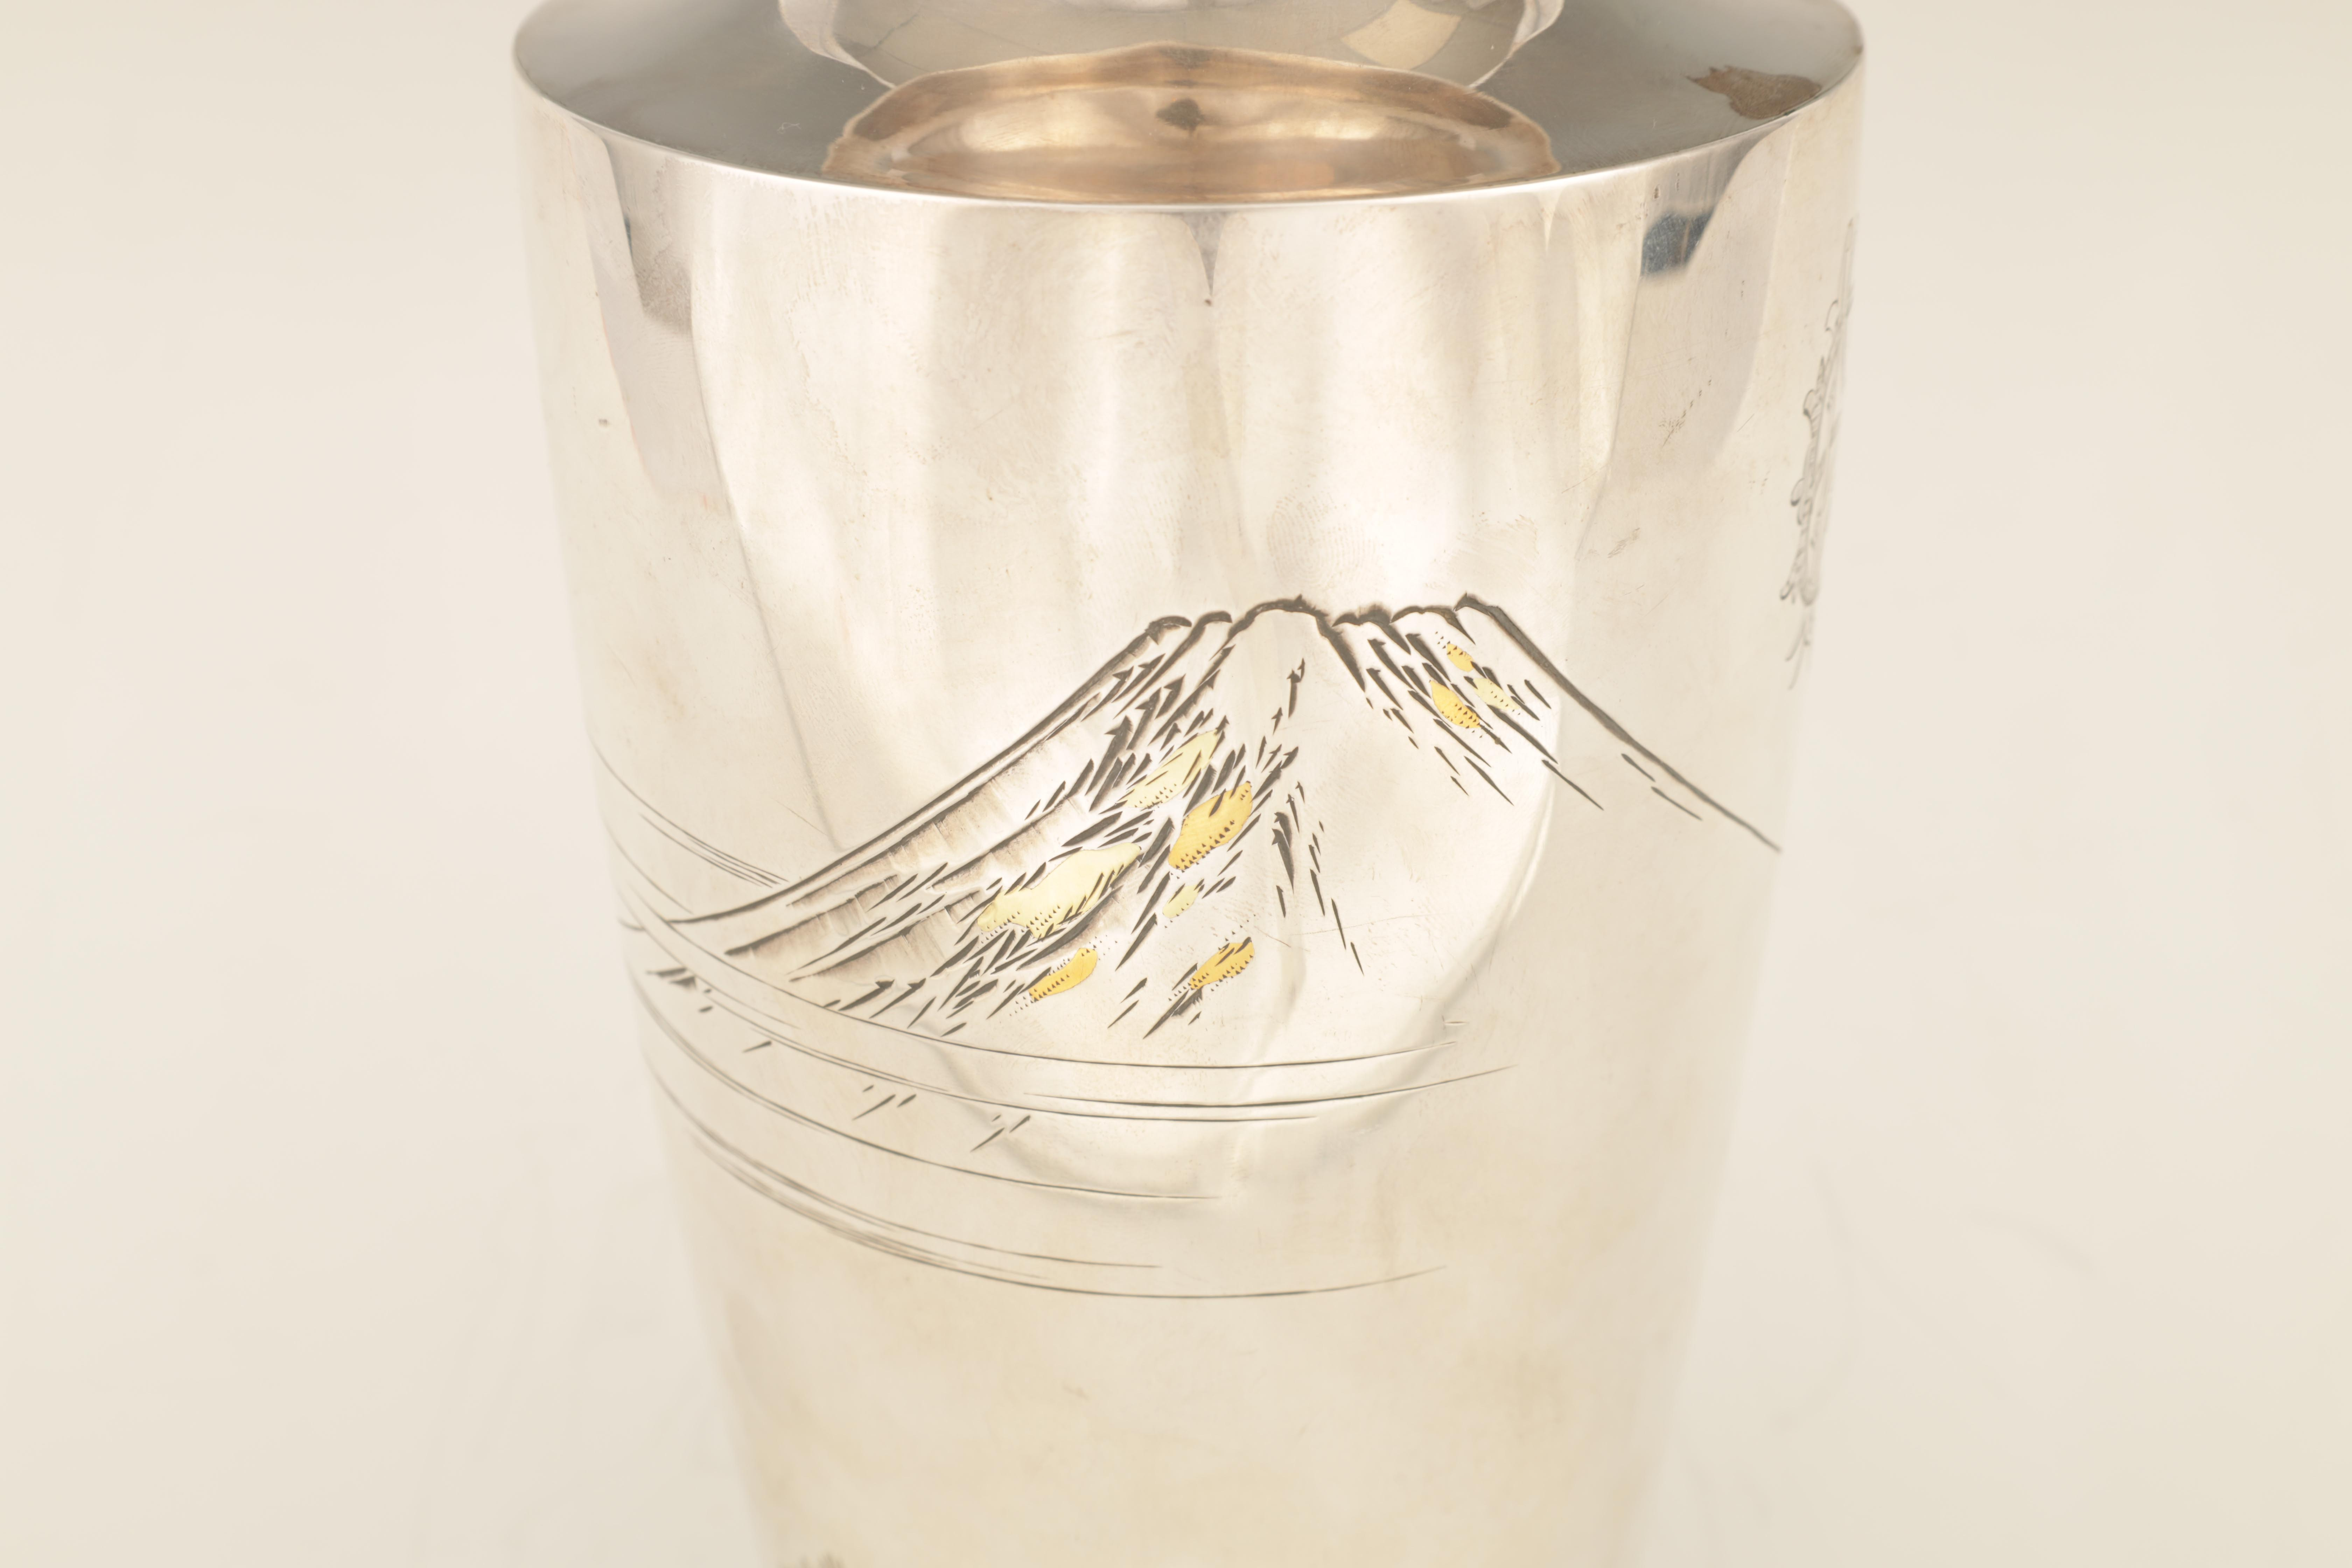 A LARGE JAPANESE MEIJI PERIOD SILVER VASE embellished with gilt highlights and engraved scene of - Image 6 of 6